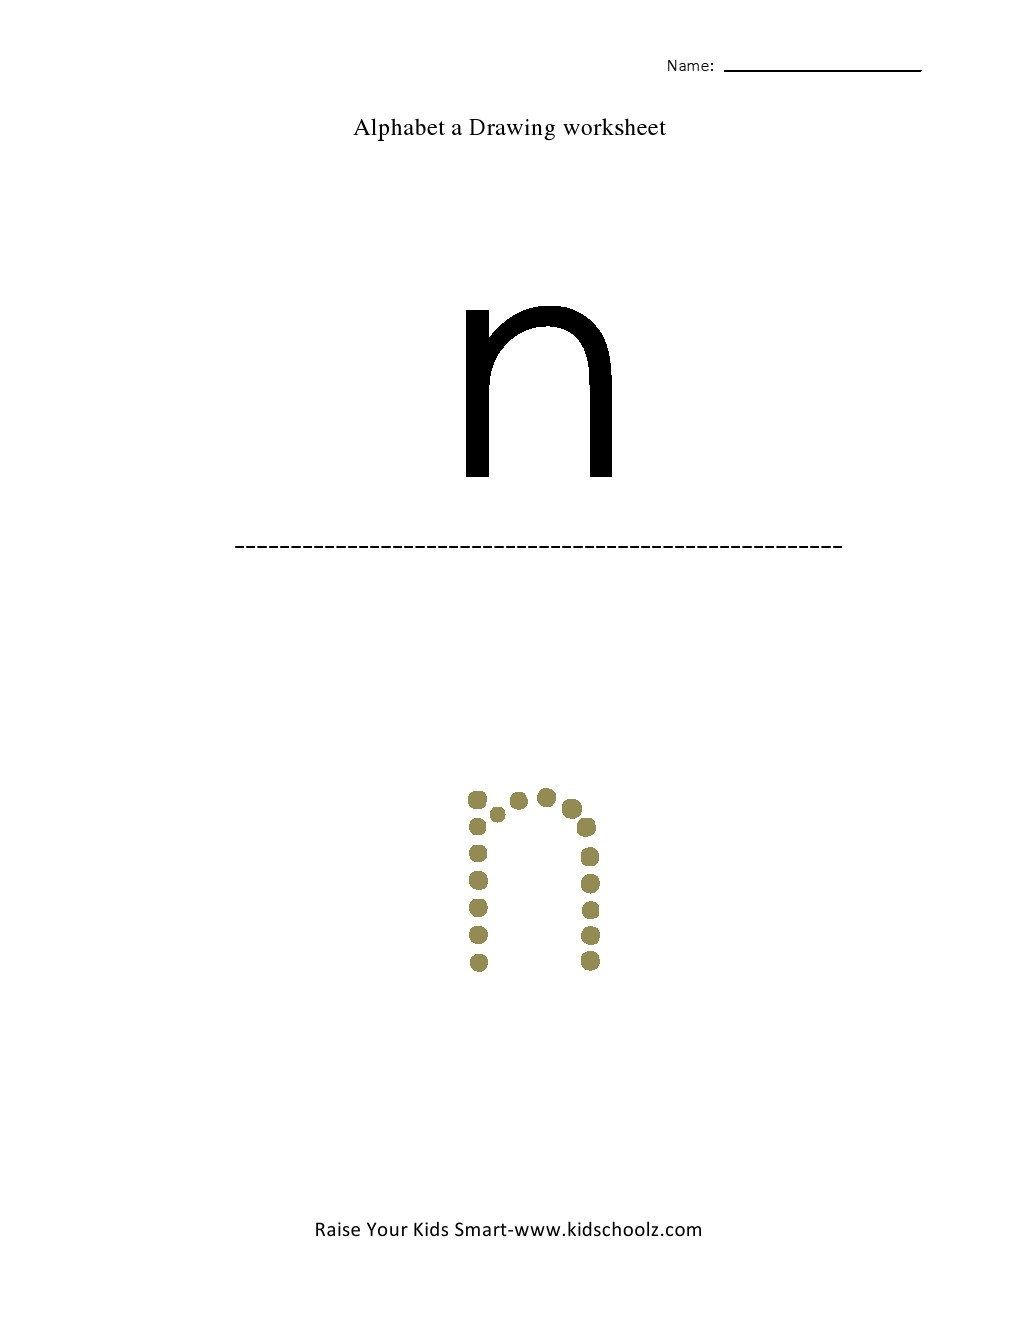 Free Worksheets dotted worksheets : Tracing Small Letter Alphabets - n - Kidschoolz